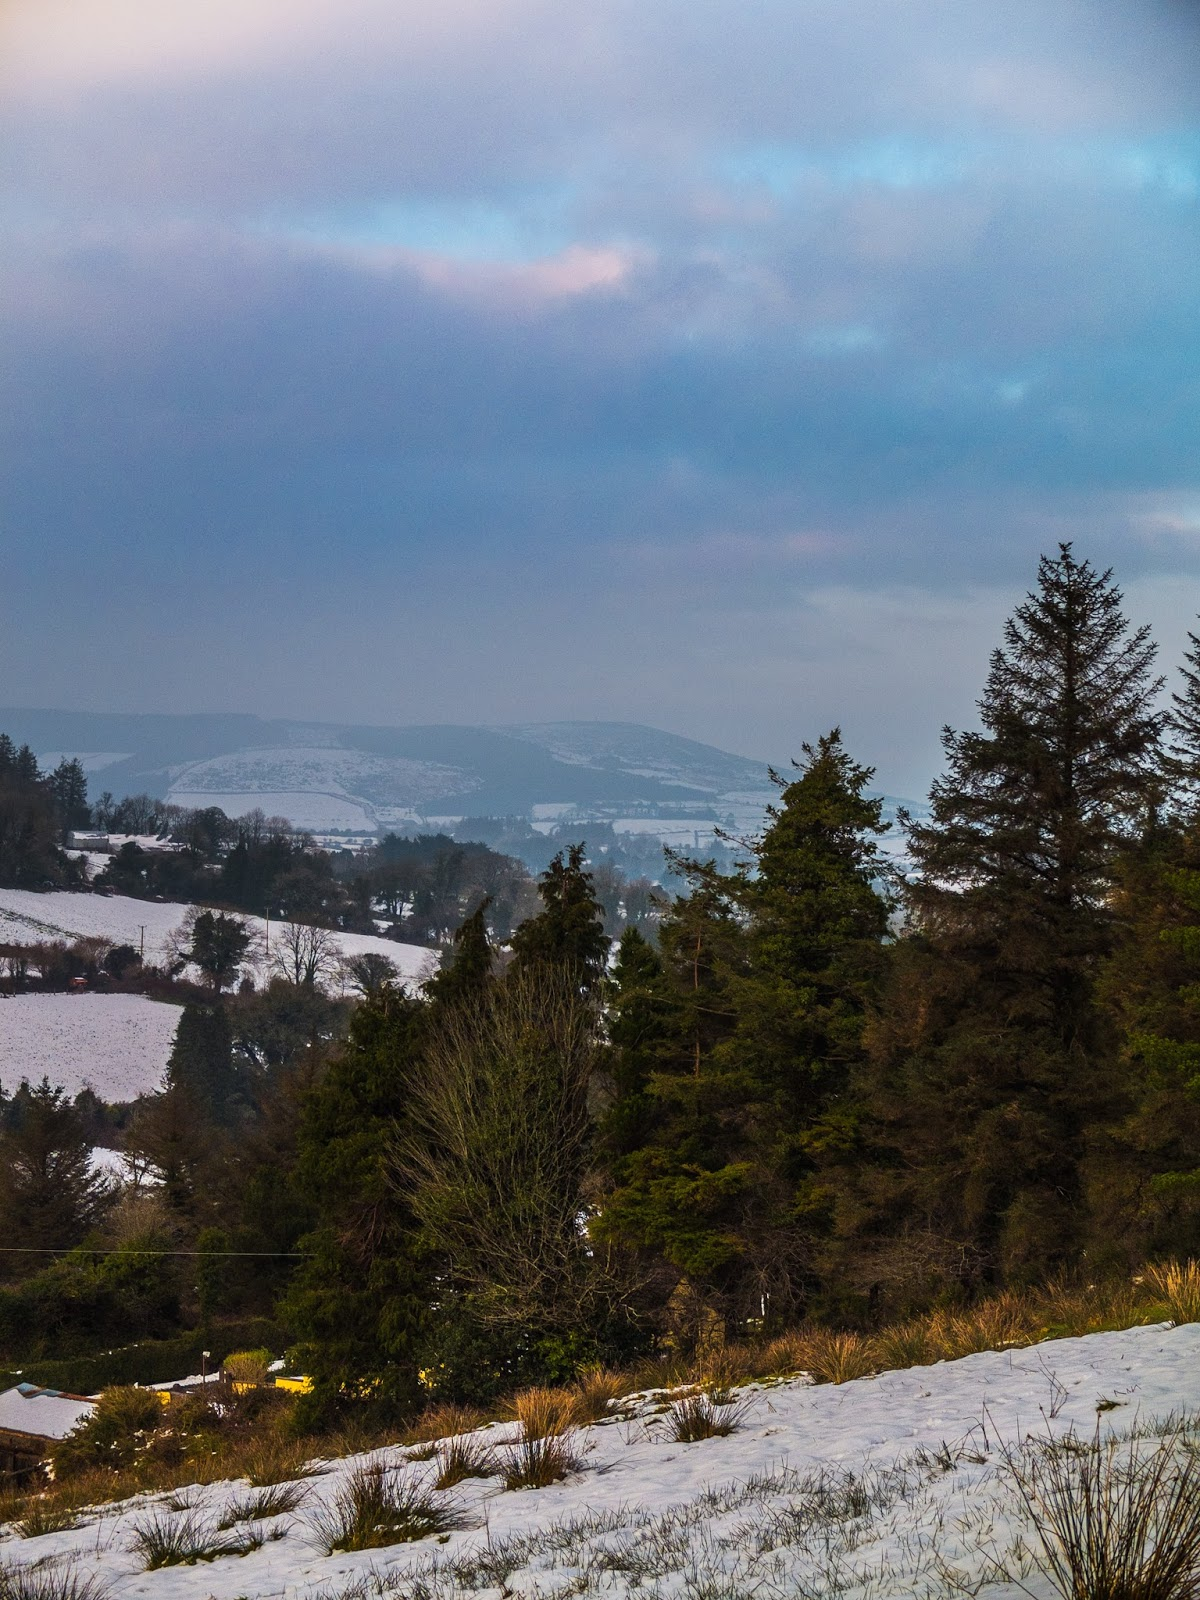 Snow mountain side landscape with a view of Mount Hilary in North County Cork.